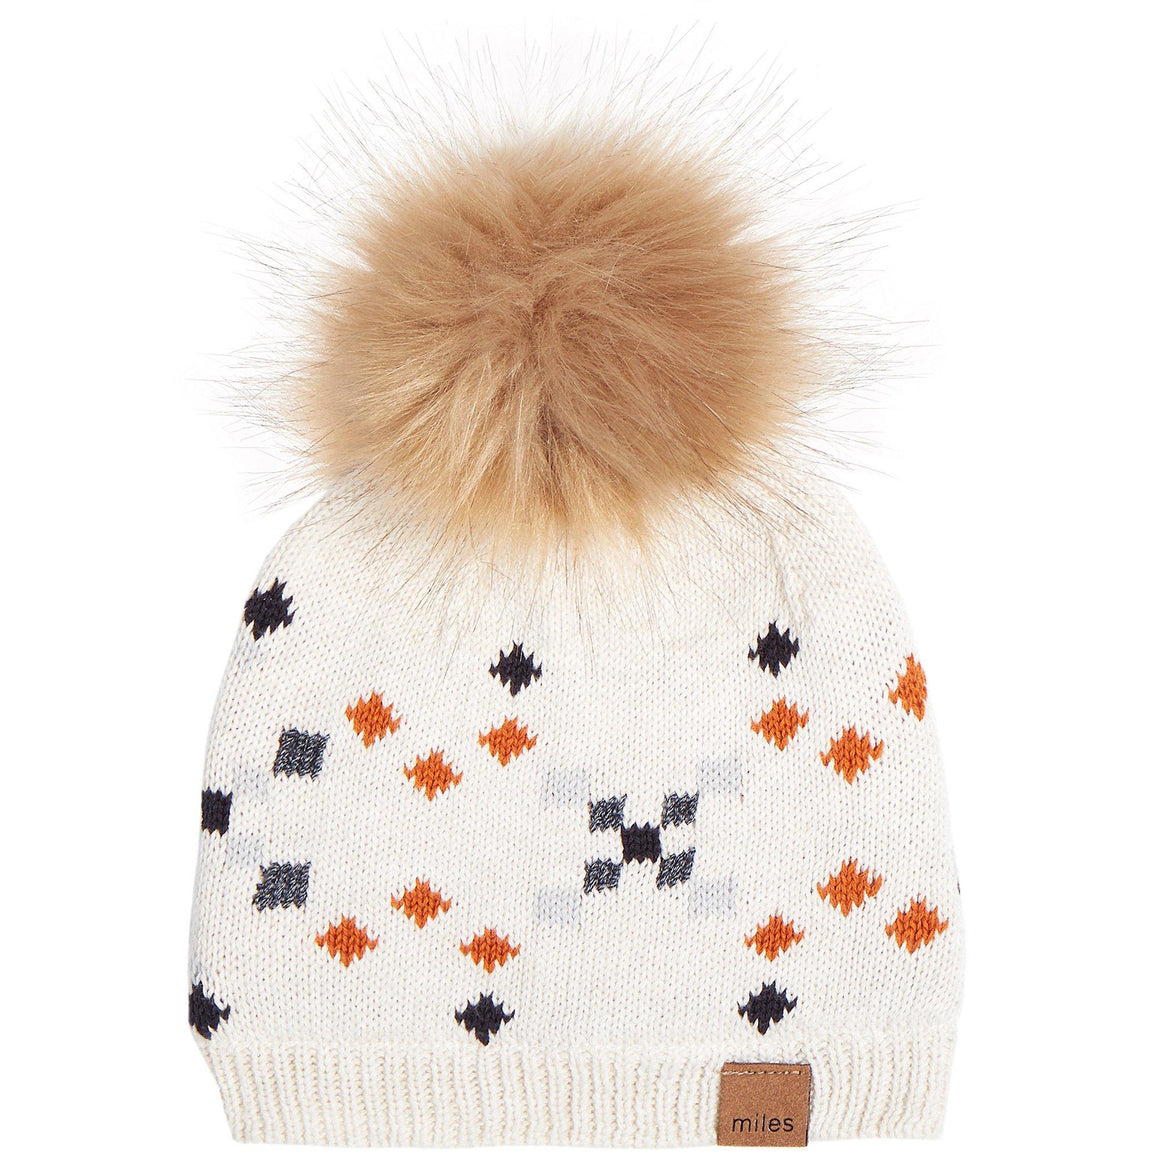 19FM46Y705 - MILES BABY Heather Beige Knit Pom Pom Hat Winter Hat Miles Baby